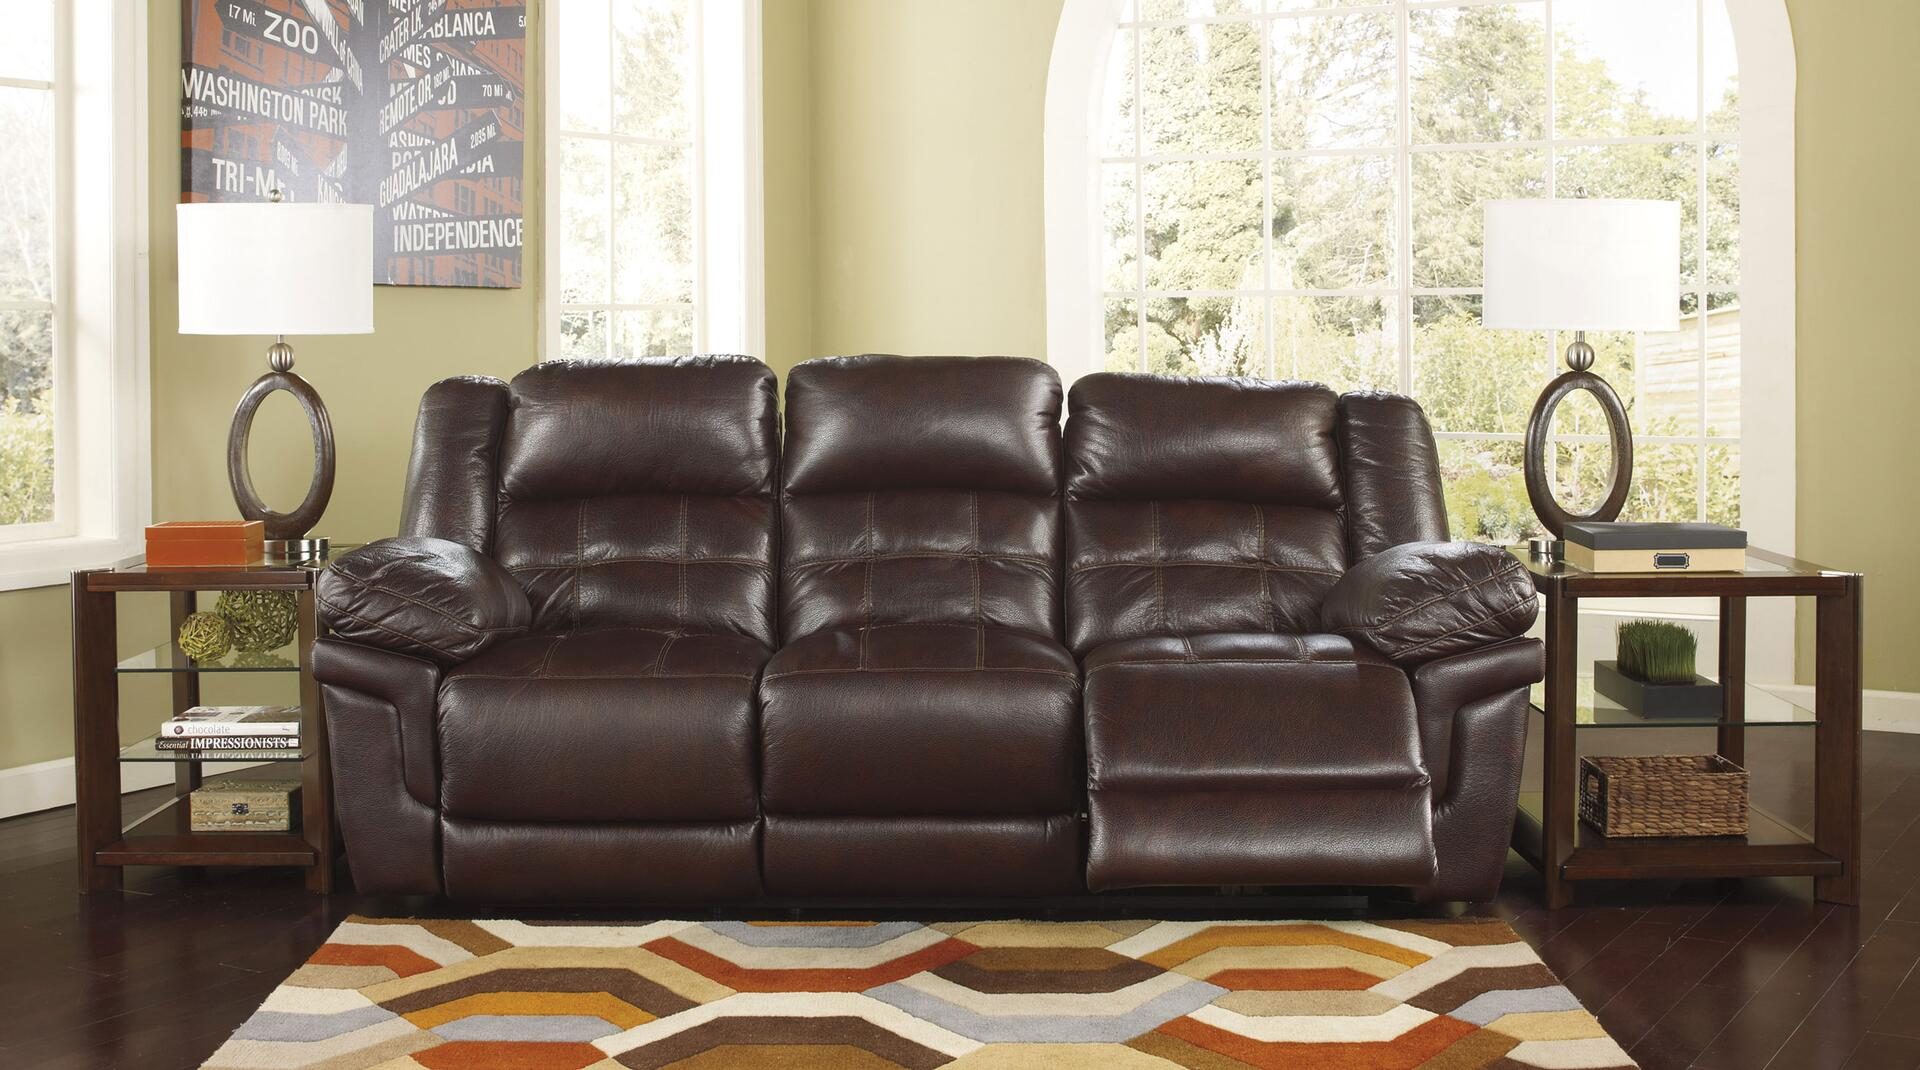 Benchcraft 2590288 Randon Series Reclining Faux Leather